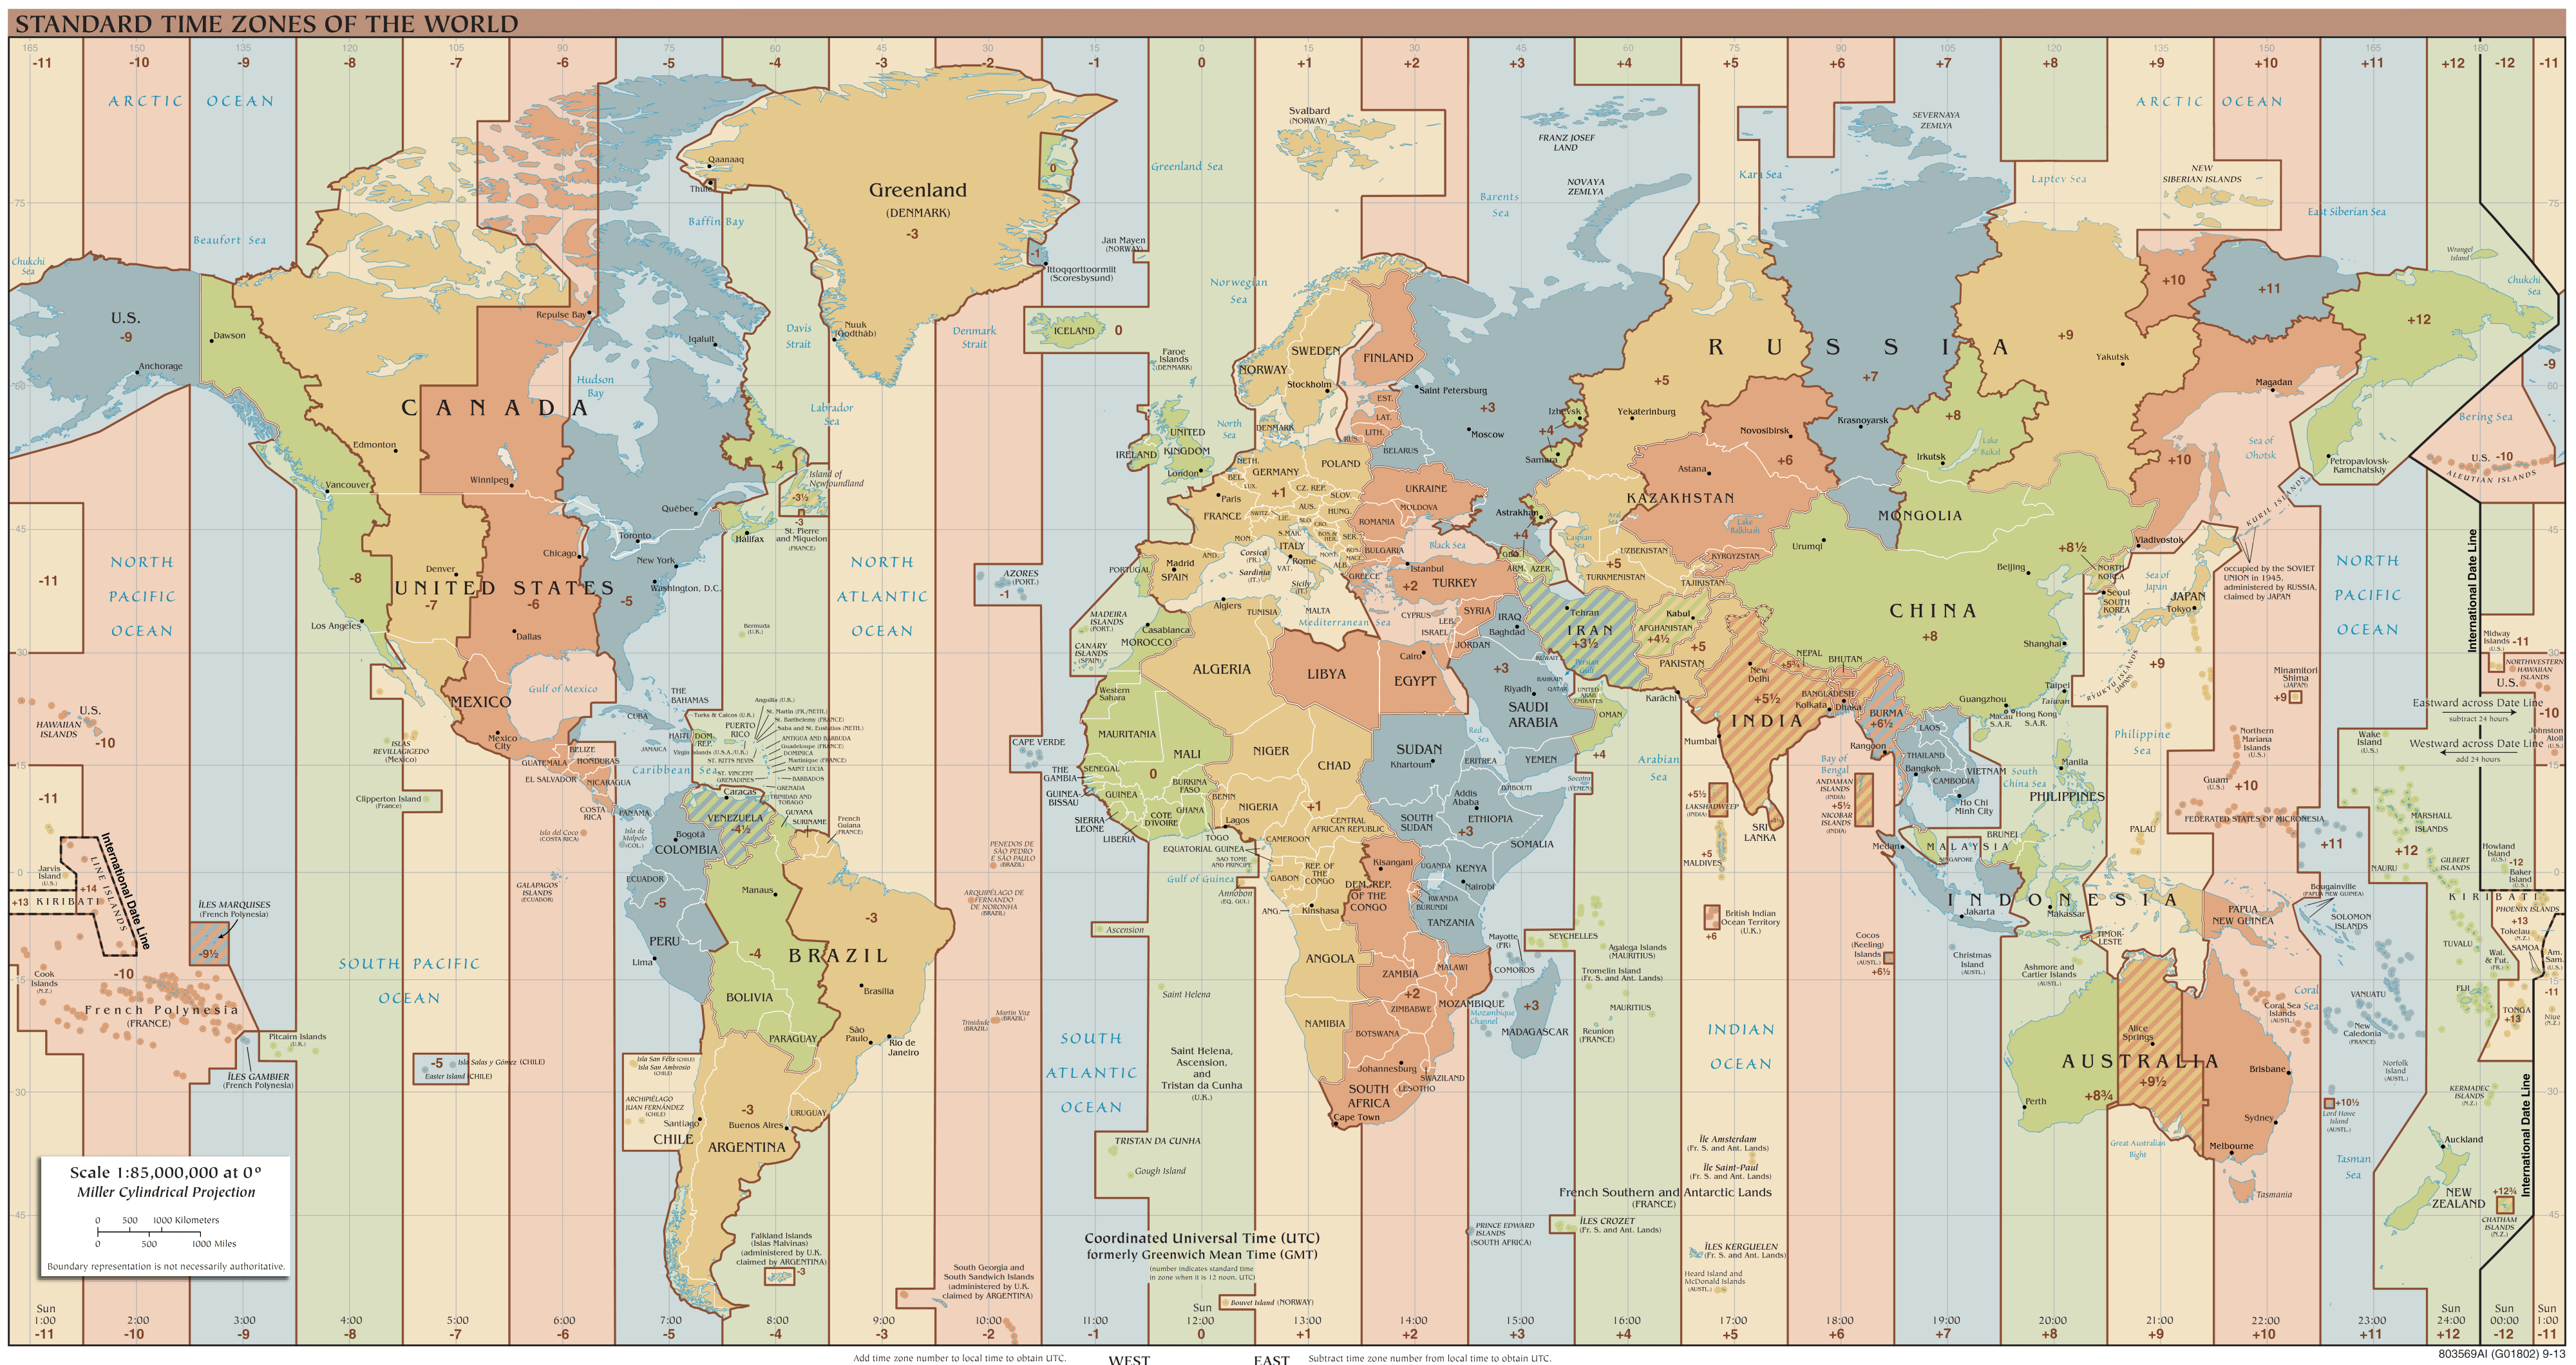 Simplified Calendar And No Time Zones